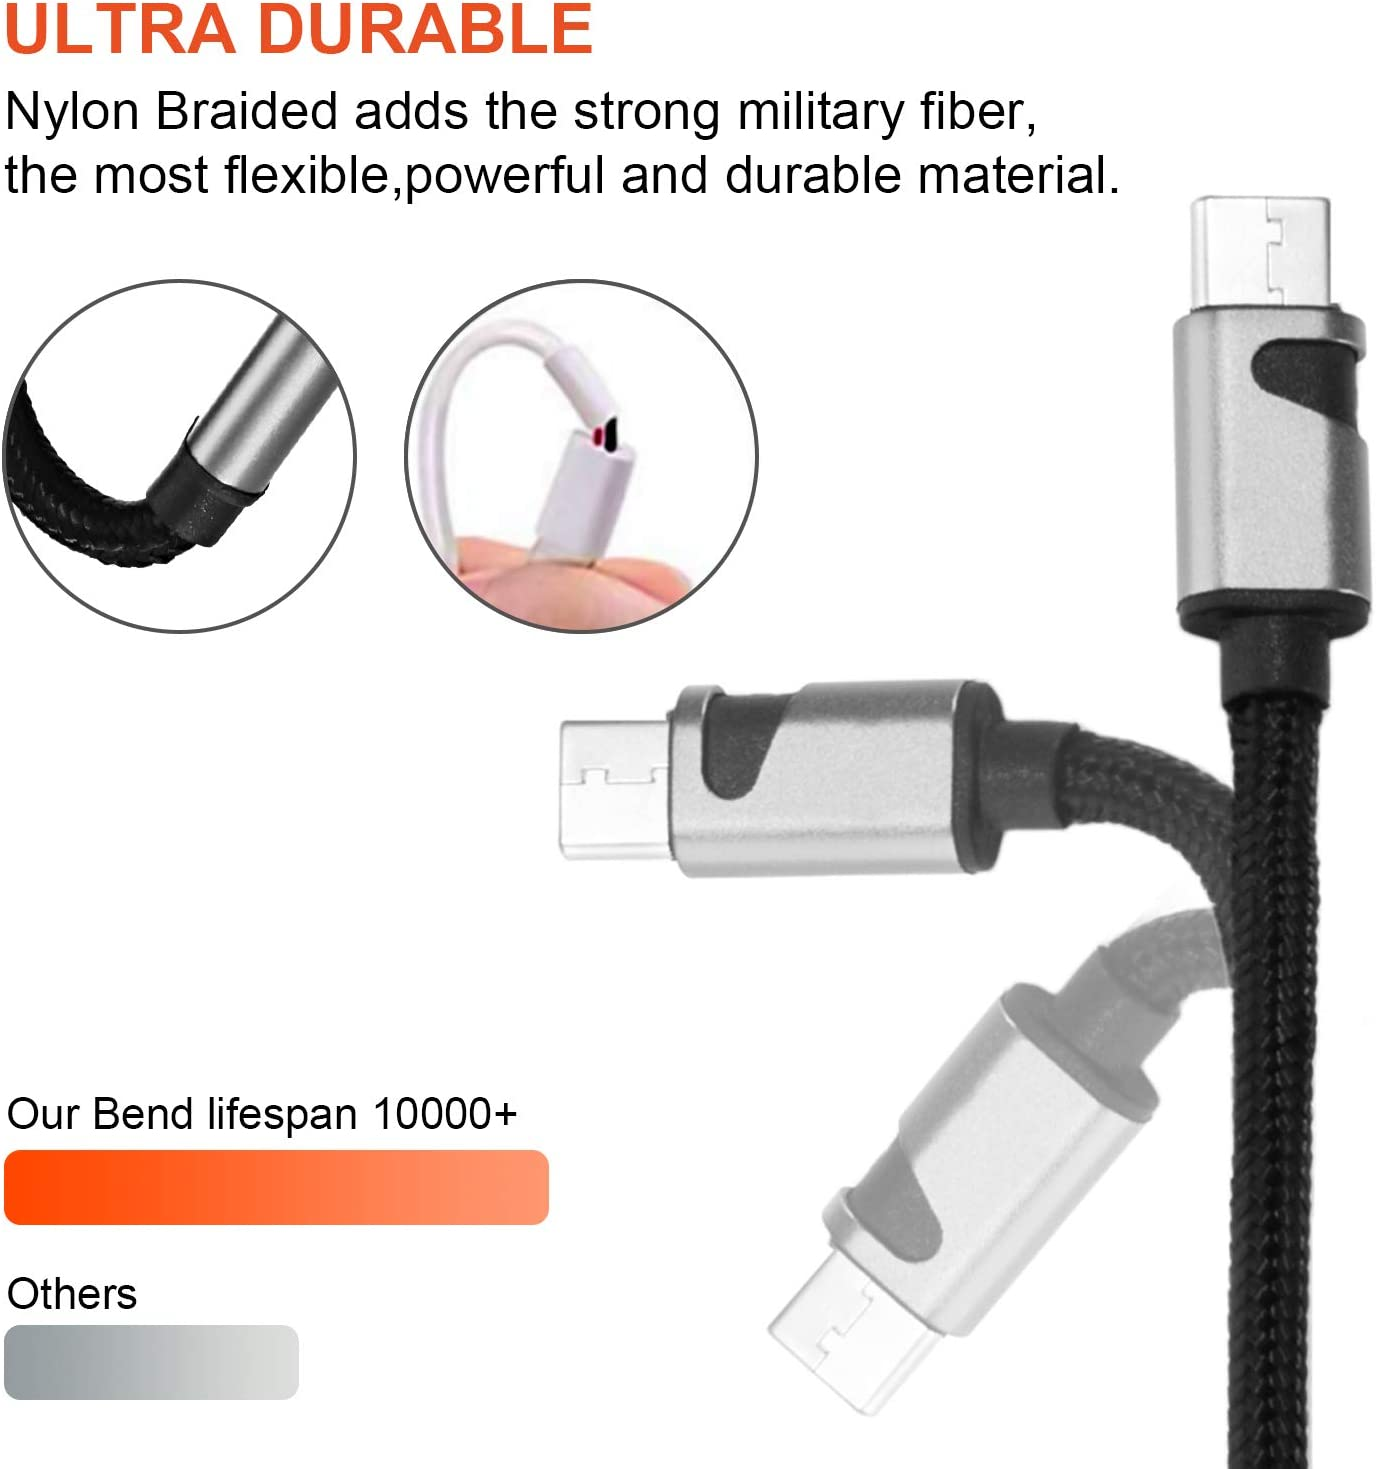 Snyank USB A to Type C Charger Nylon Braided Fast Charge Cord Compatible with Samsung Galaxy S10 S10E S9 S8 Plus Note 10 9 8 CT015-SILVER Moto Z LG G8 4 ft USB Type C Cable